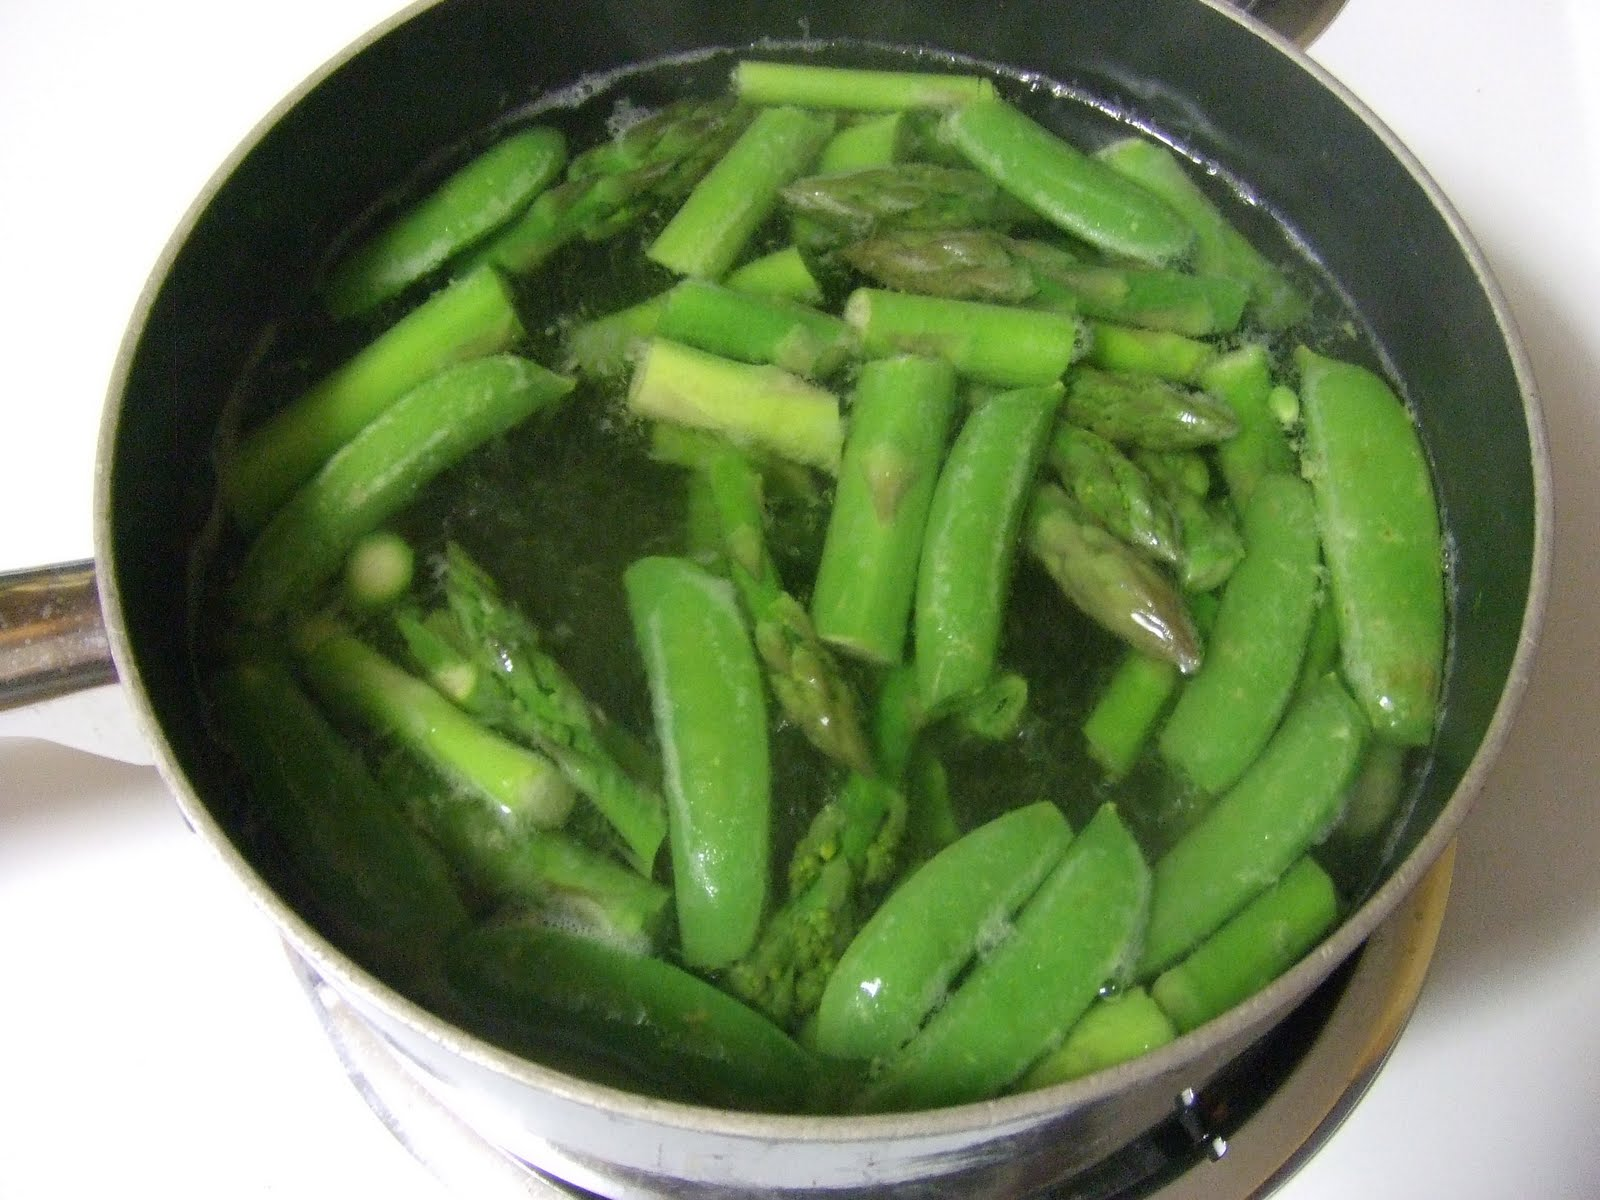 pot, boil salted water. Cook asparagus until bright green. Add in peas ...